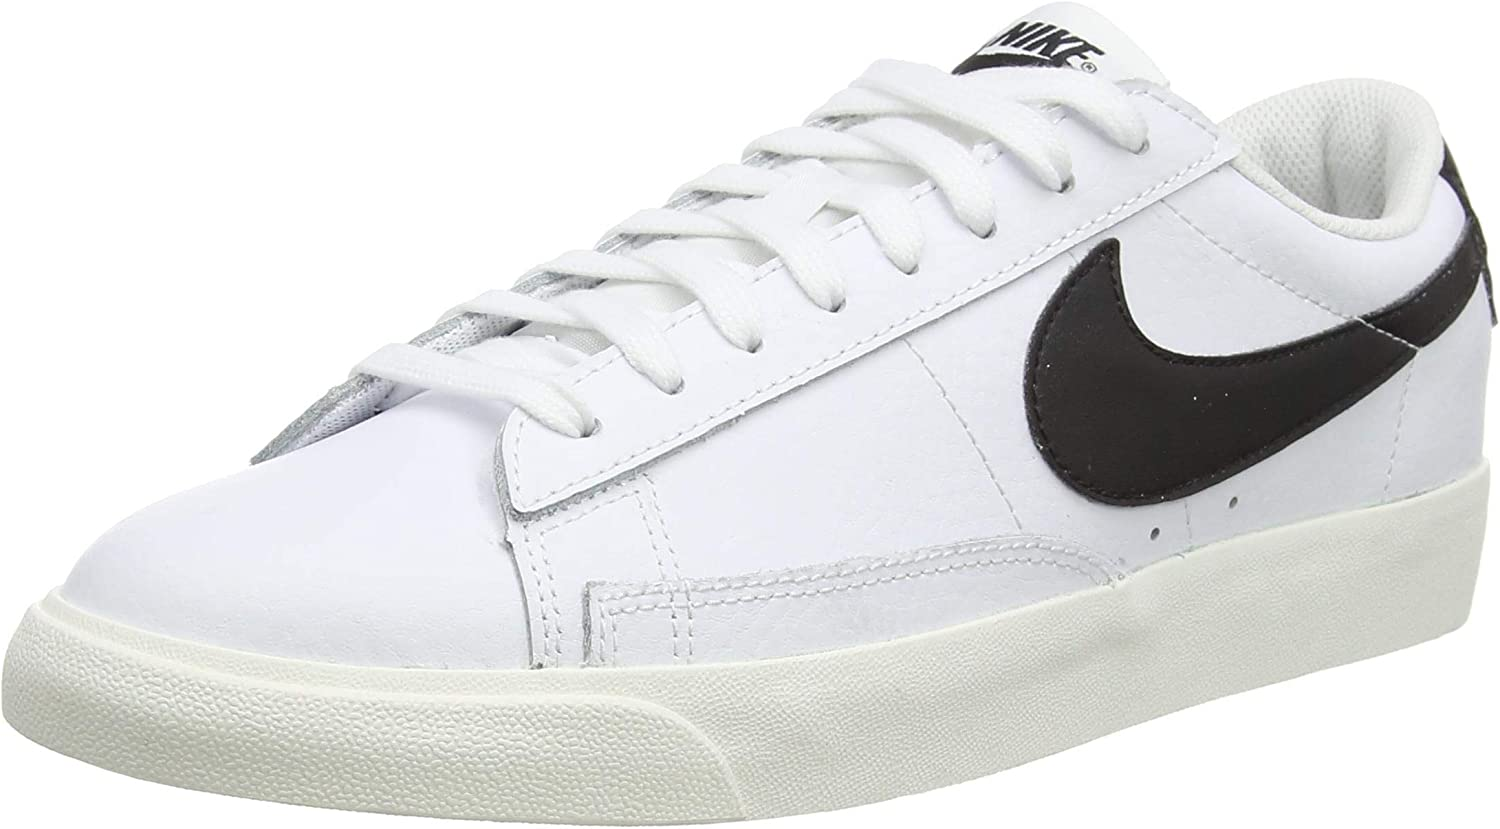 Nike Men's Shoe Challenge the lowest price of Japan Our shop most popular Basketball